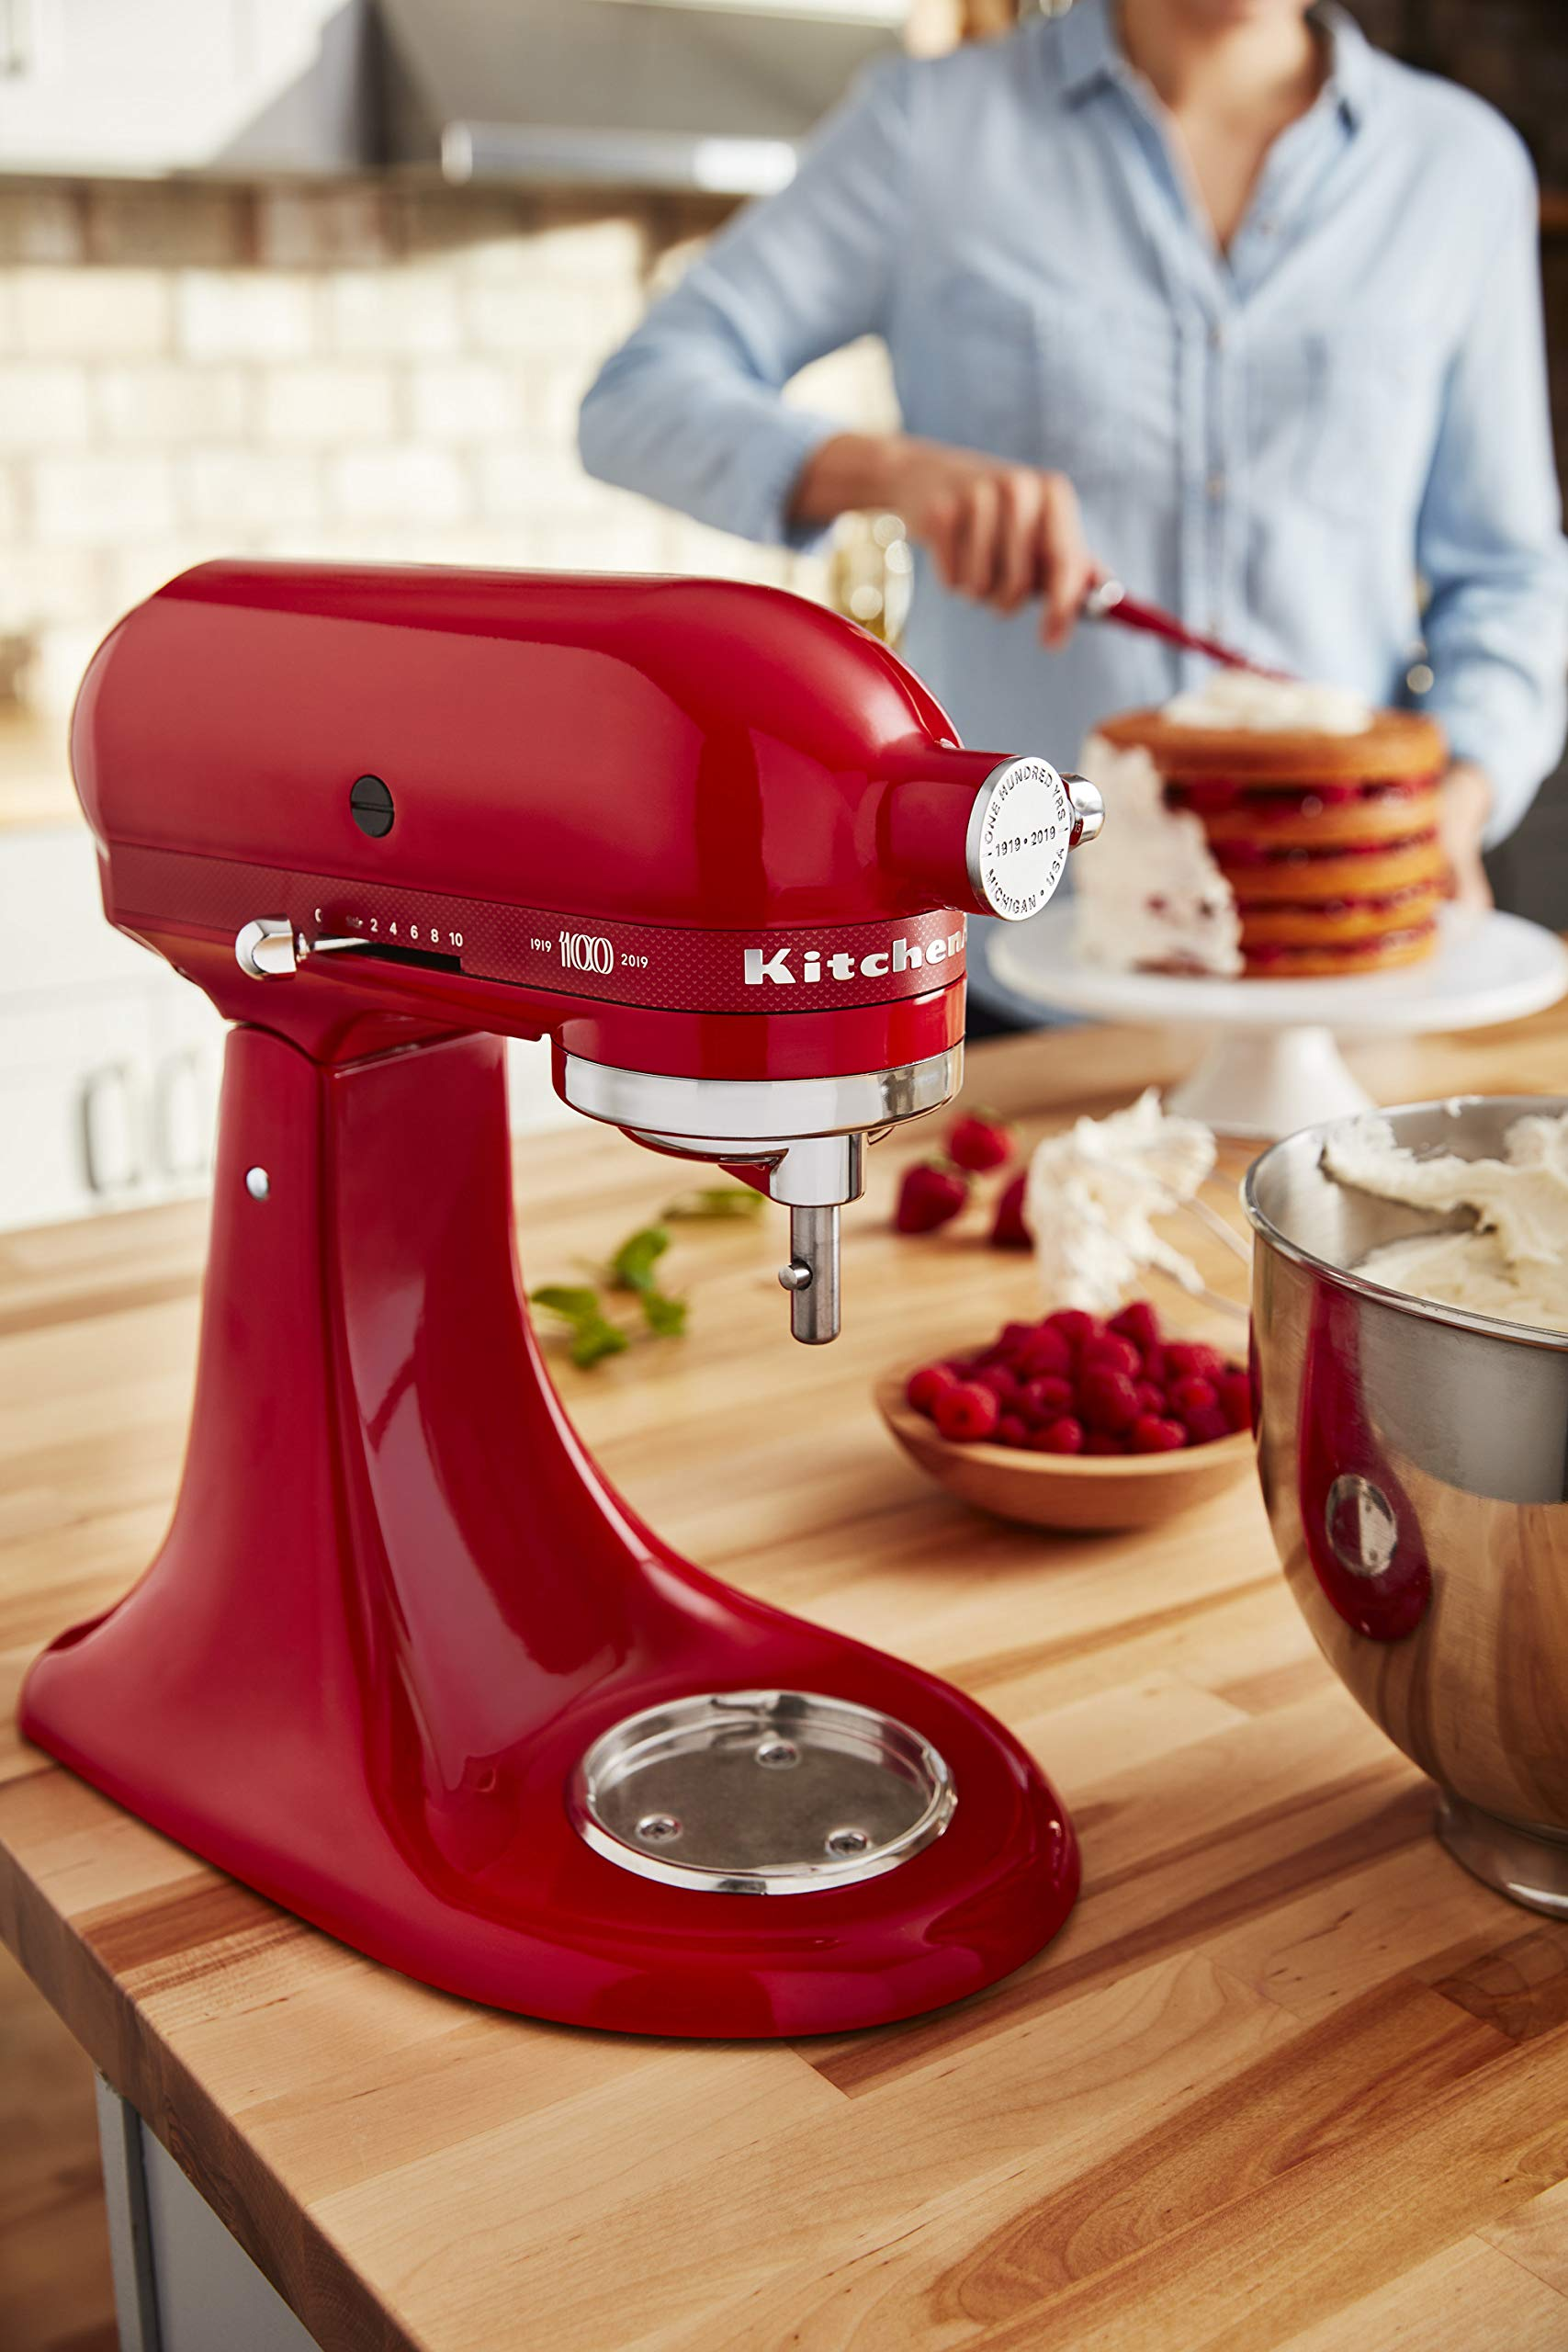 KitchenAid KSM180QHSD 100 Year Limited Edition Queen of Hearts Stand Mixer, Passion Red by KitchenAid (Image #7)